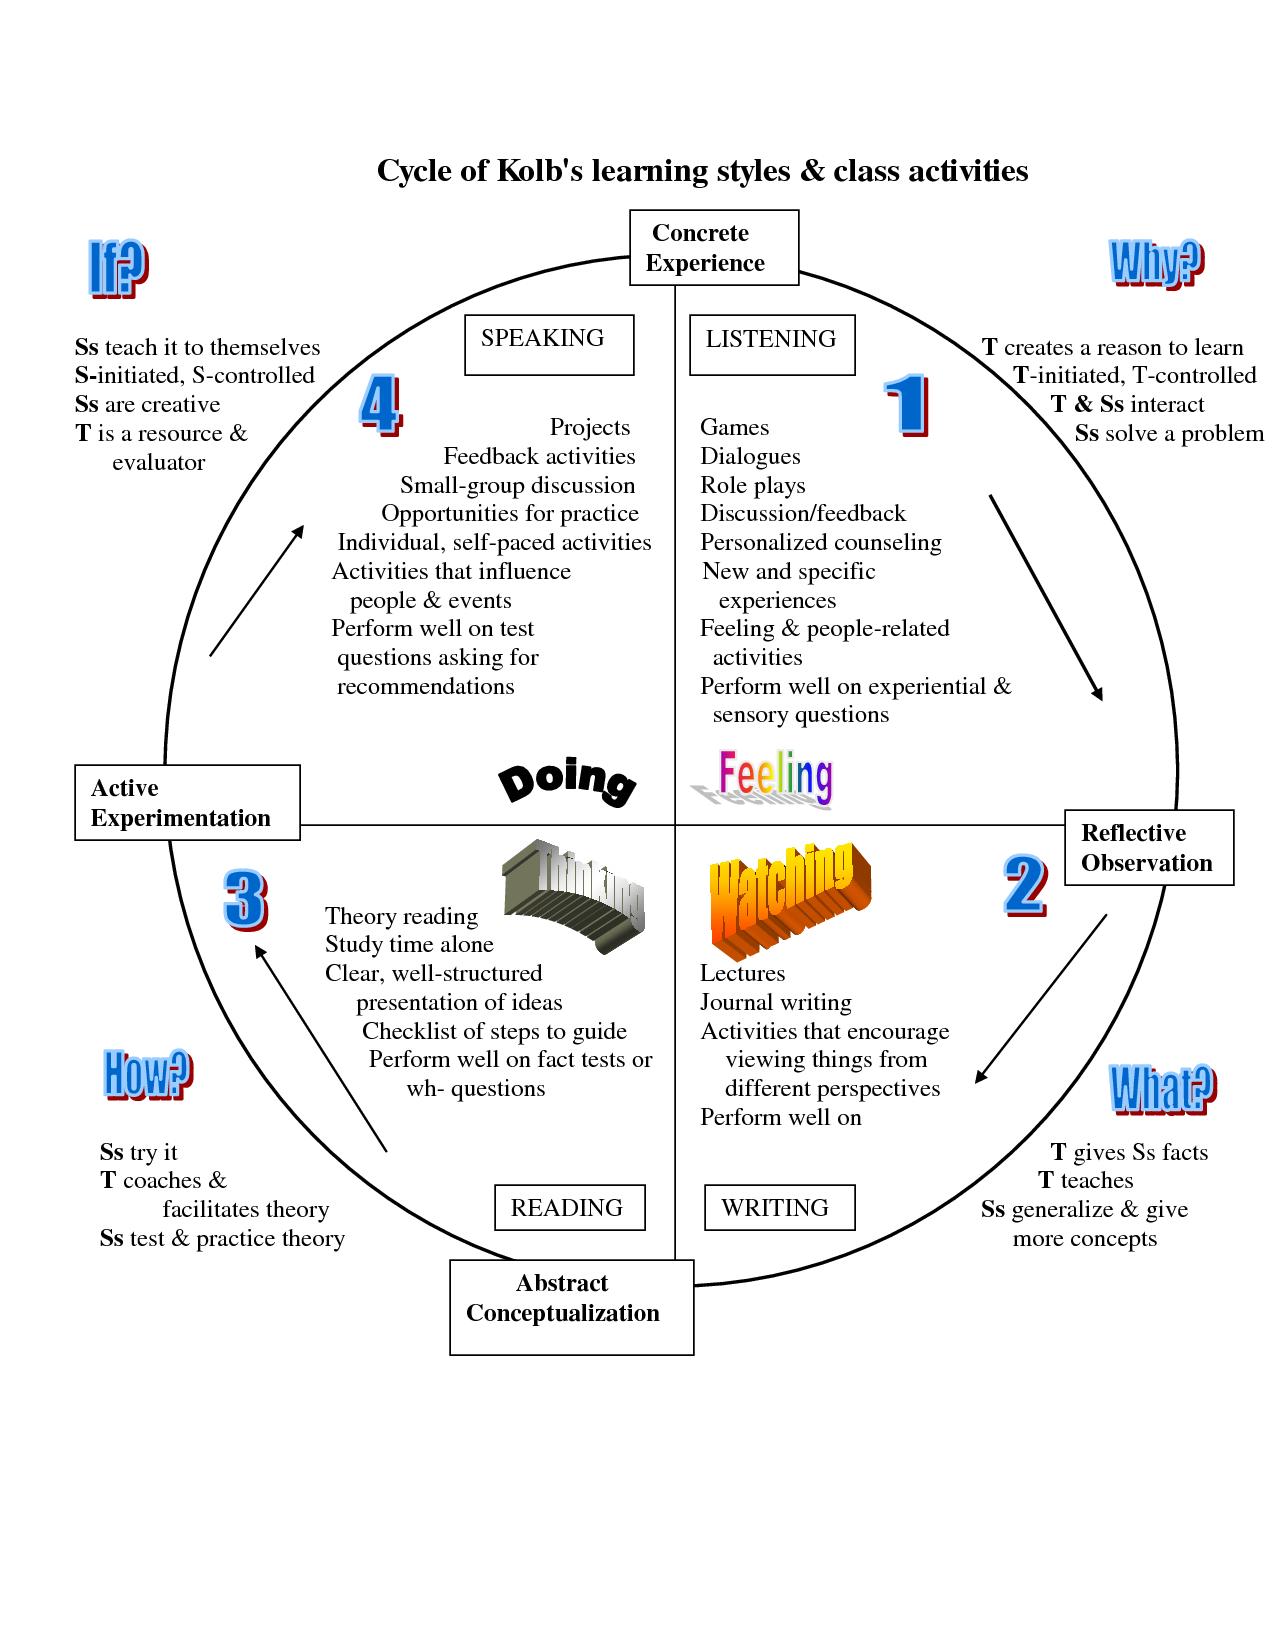 reflective essay about learning Example 1 - kolb's learning cycle kolb's learning cycle is a well-known theory which argues we learn from our experiences of life, even on an everyday basis.